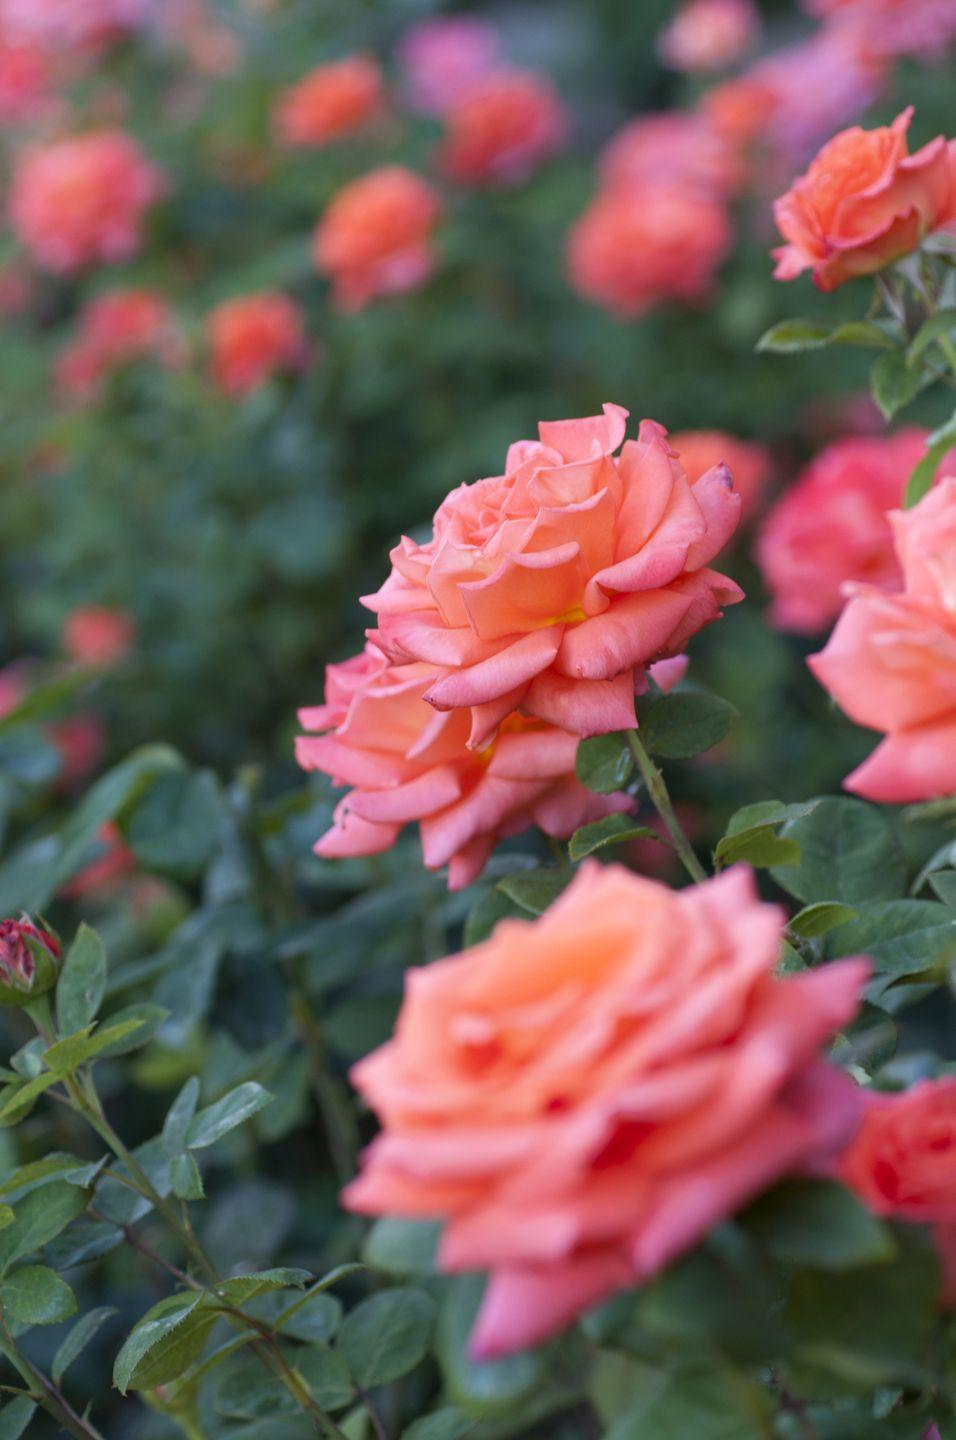 """<p>Walk among thousands of roses at the <a href=""""https://go.redirectingat.com?id=74968X1596630&url=https%3A%2F%2Fwww.tripadvisor.com%2FAttraction_Review-g40424-d665769-Reviews-Gardens_of_the_American_Rose_Center-Shreveport_Louisiana.html&sref=https%3A%2F%2Fwww.redbookmag.com%2Flife%2Fg36983852%2Funderrated-attractions-by-state%2F"""" rel=""""nofollow noopener"""" target=""""_blank"""" data-ylk=""""slk:Gardens of the American Rose Center"""" class=""""link rapid-noclick-resp"""">Gardens of the American Rose Center</a> in Shreveport. Peak bloom time is mid-April to late-May, then mid-September to mid-October. </p>"""